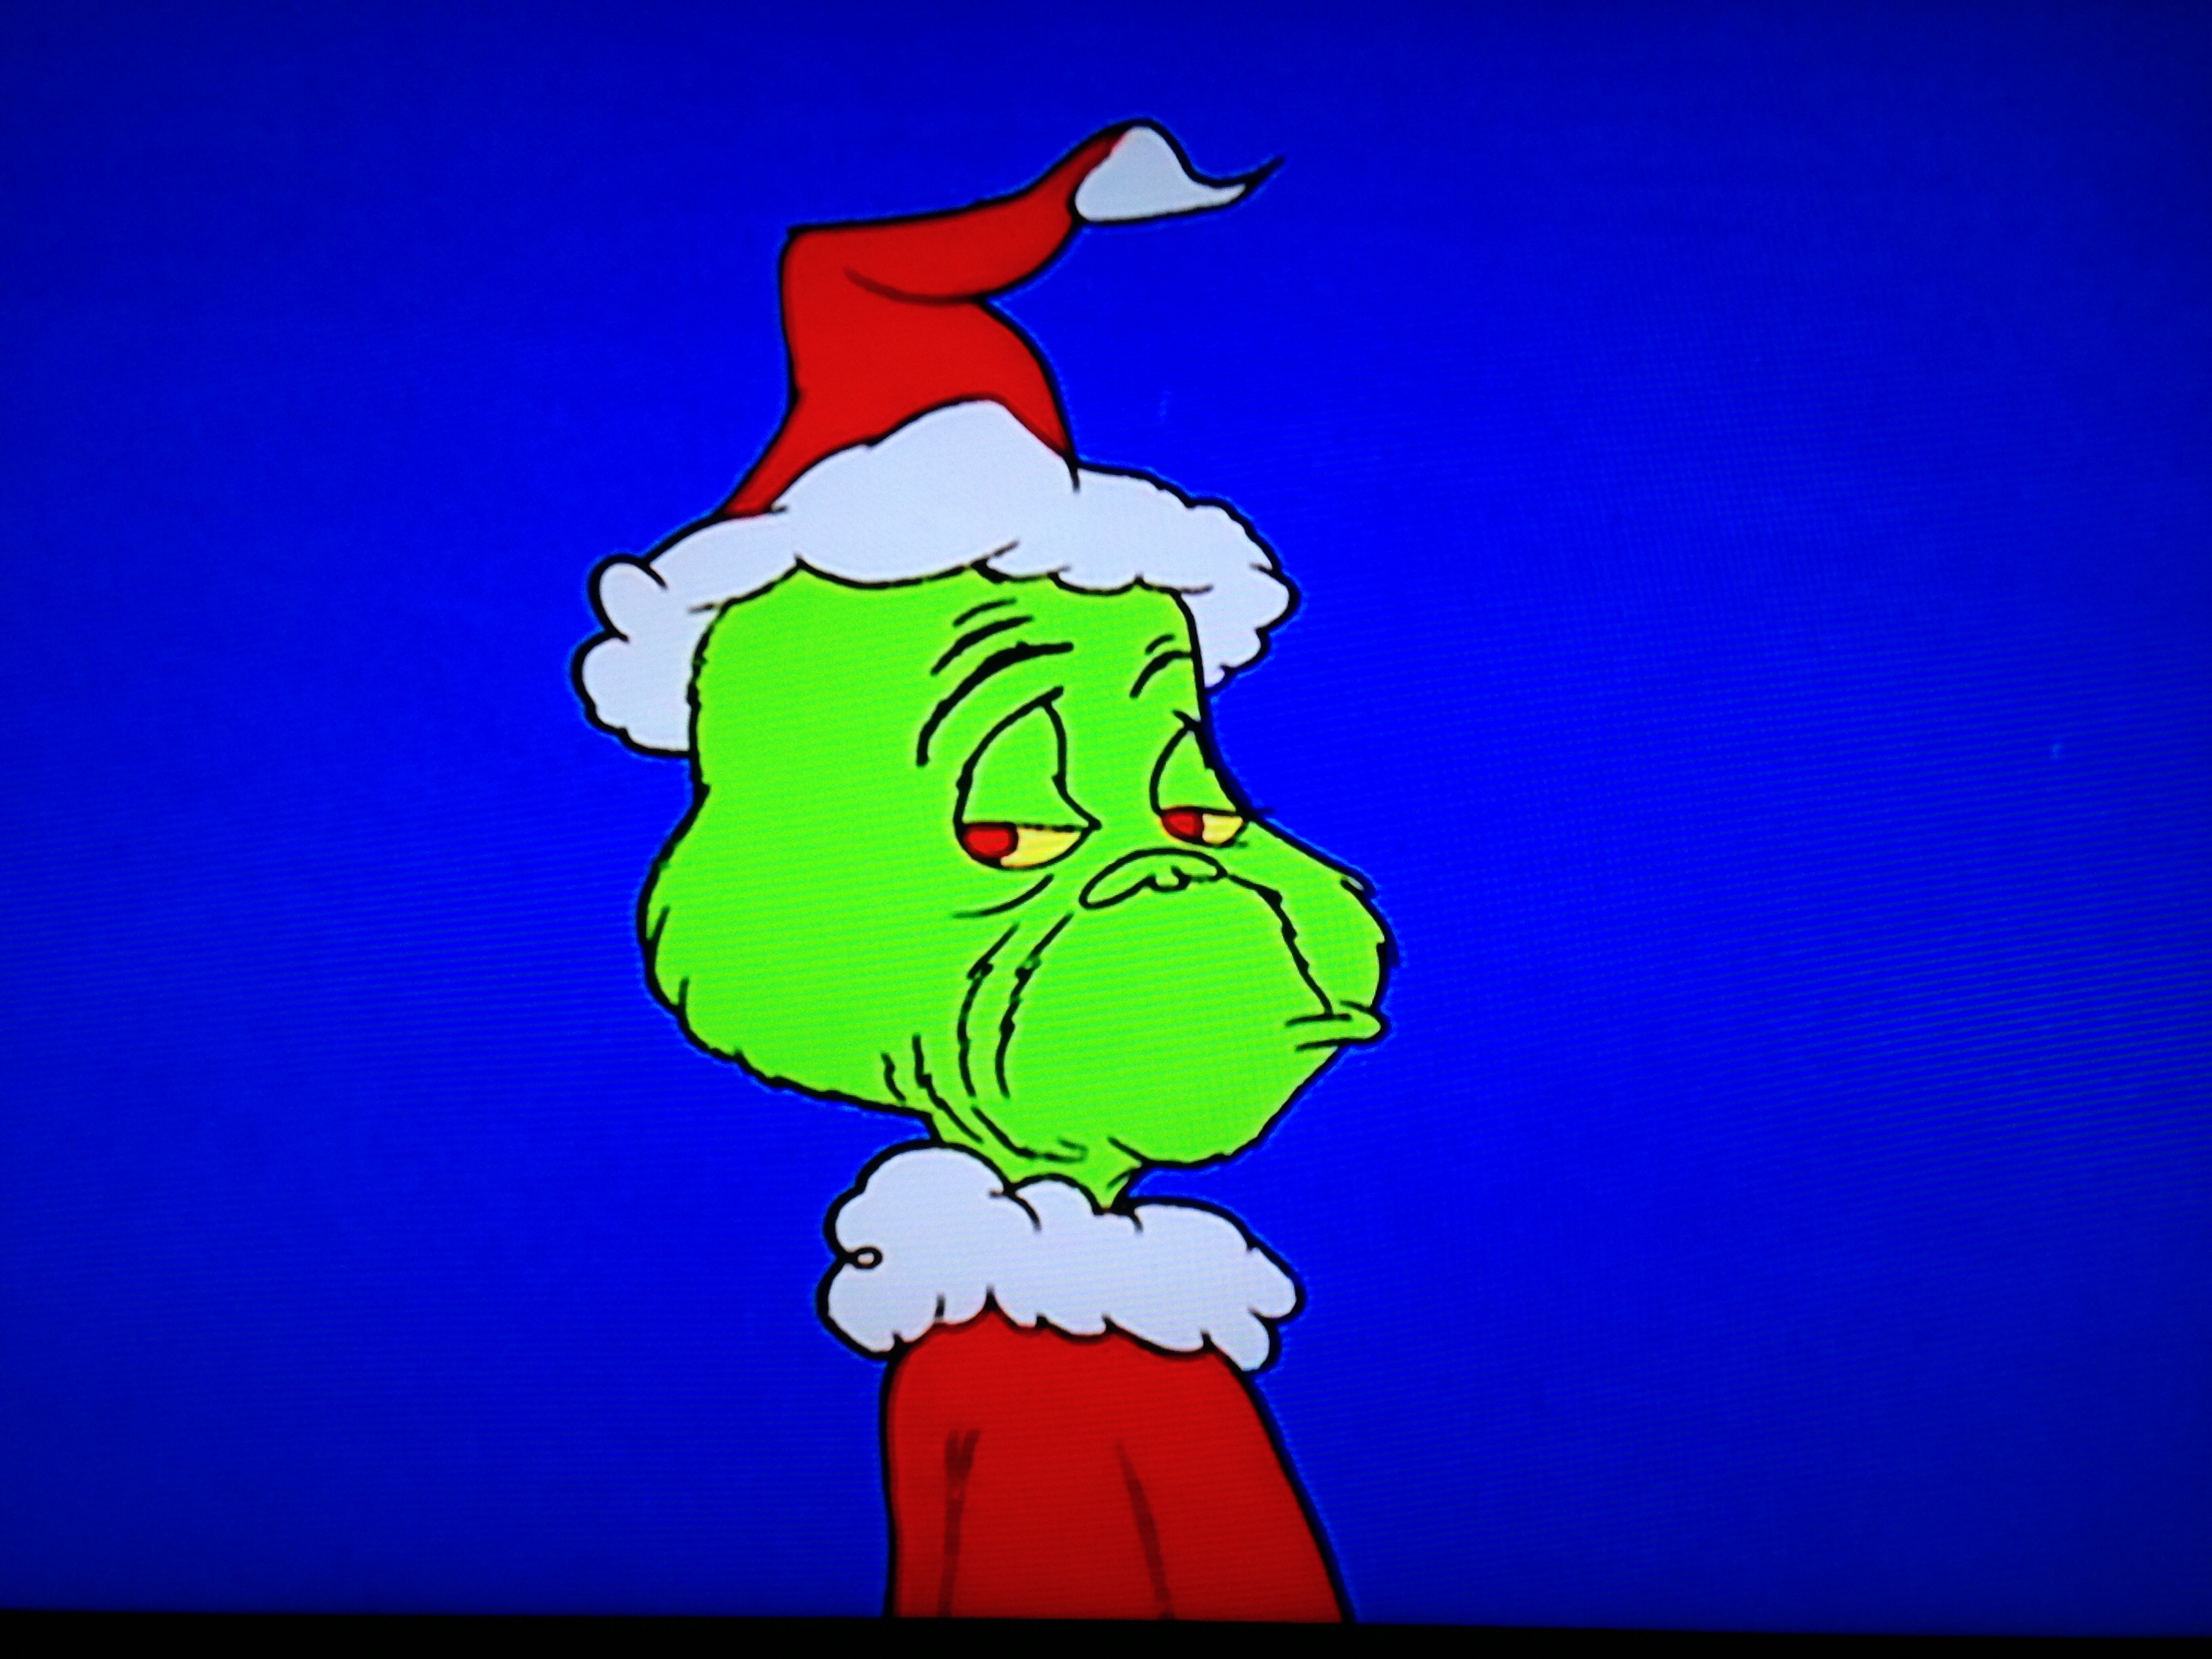 How The Grinch Stole Christmas 1966 Max.Dr Seuss How The Grinch Stole Christmas Gay Geek Gab